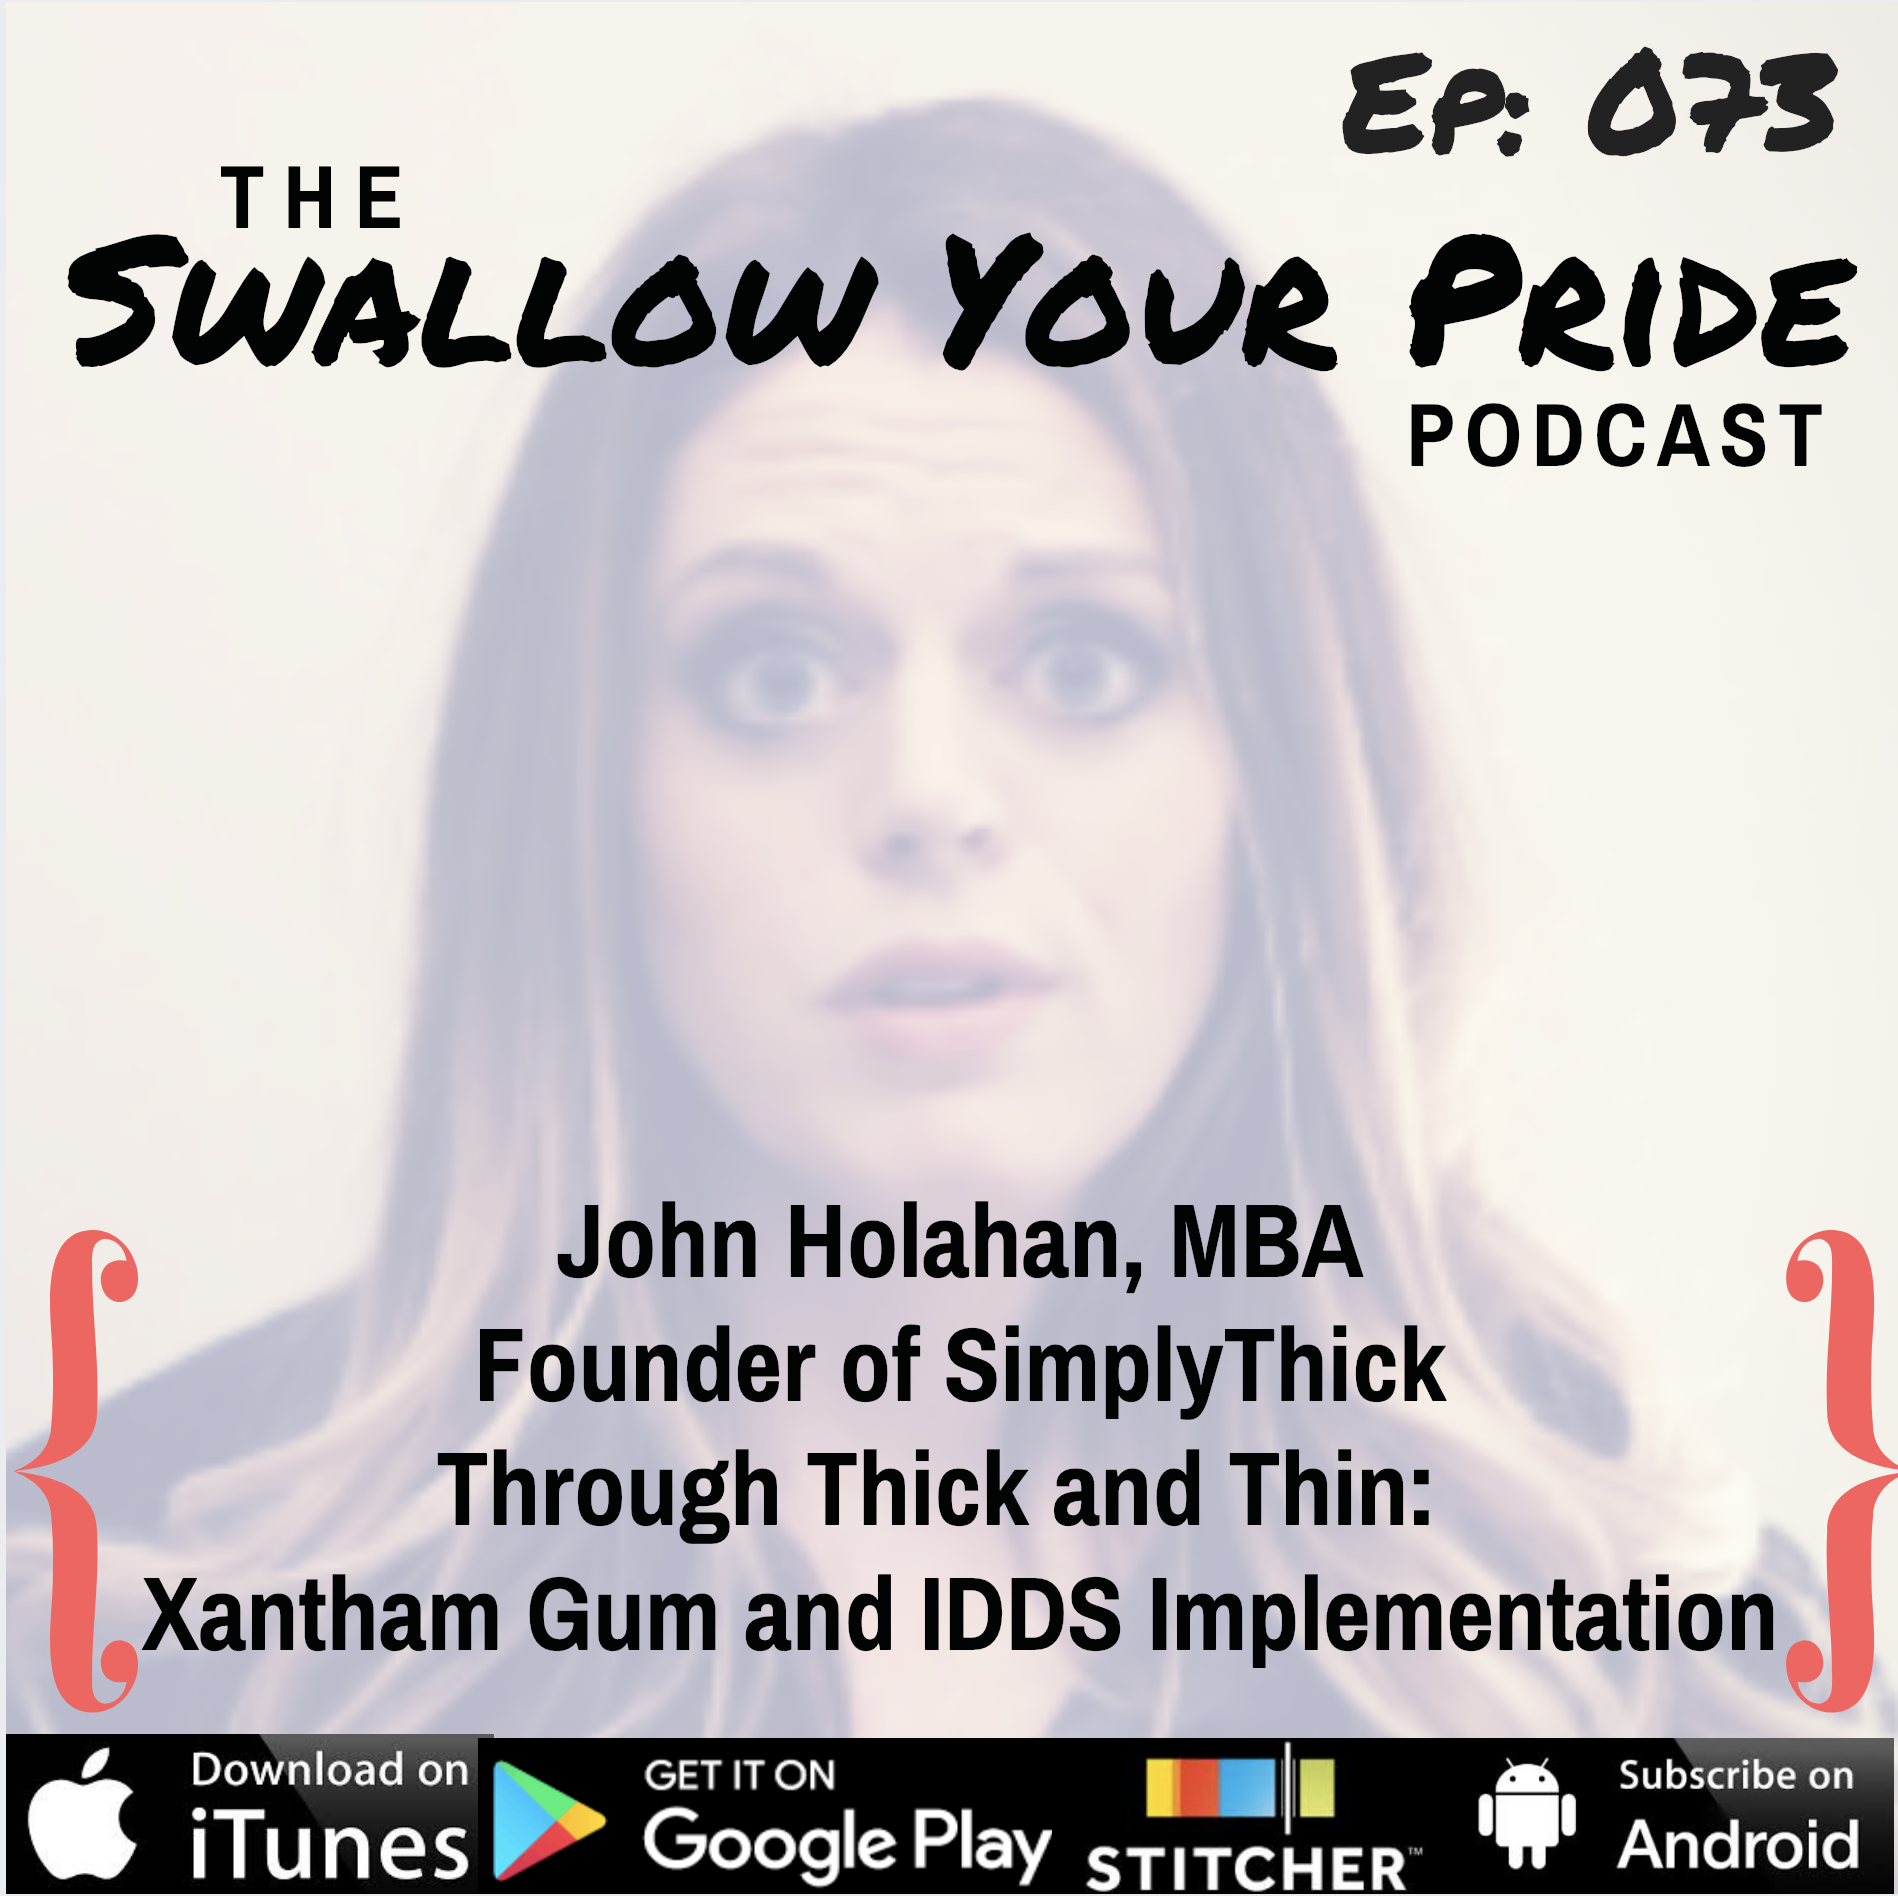 073 – John Holahan, MBA Founder of SimplyThick – Through Thick and Thin: Xantham Gum and IDDS Implementation